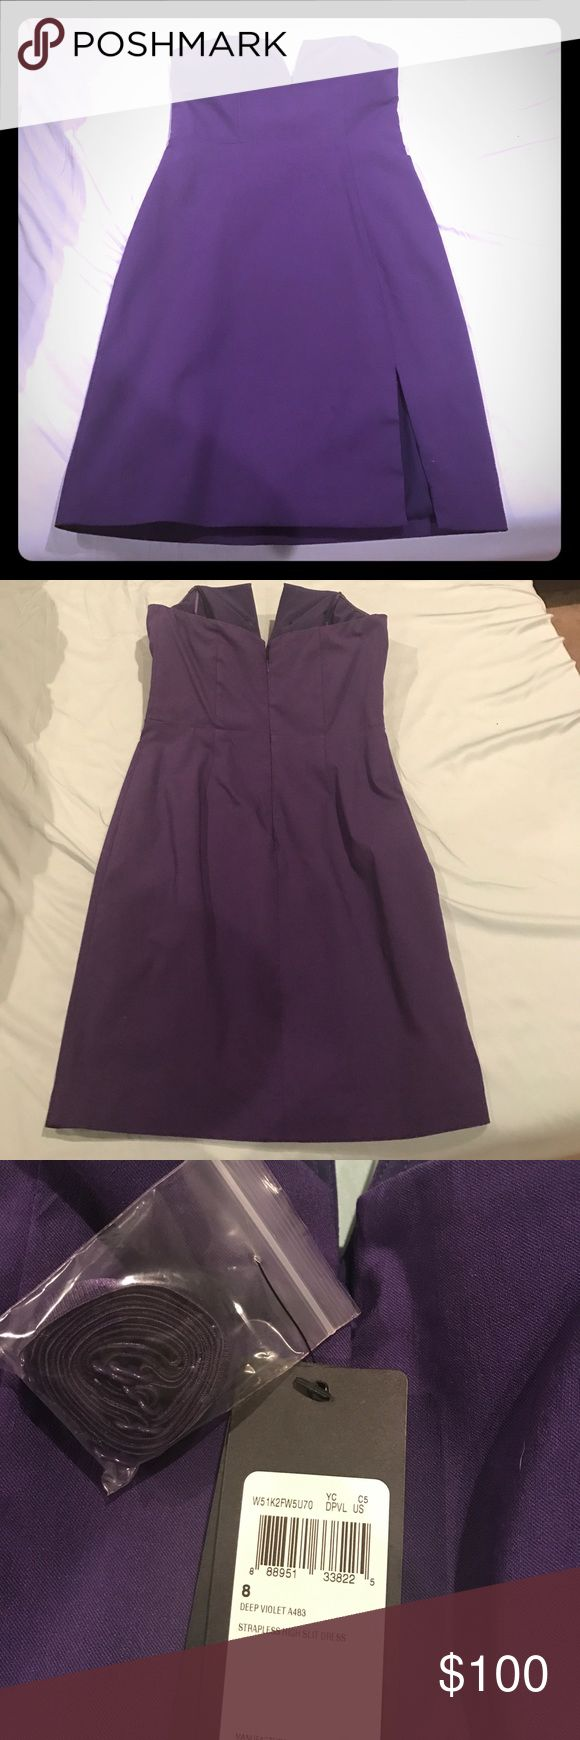 Purple Guess Dress Gorgeous Guess dress size 8, never worn, perfect for a night out of wedding! Got cups added to it but never worn! Guess Dresses Strapless